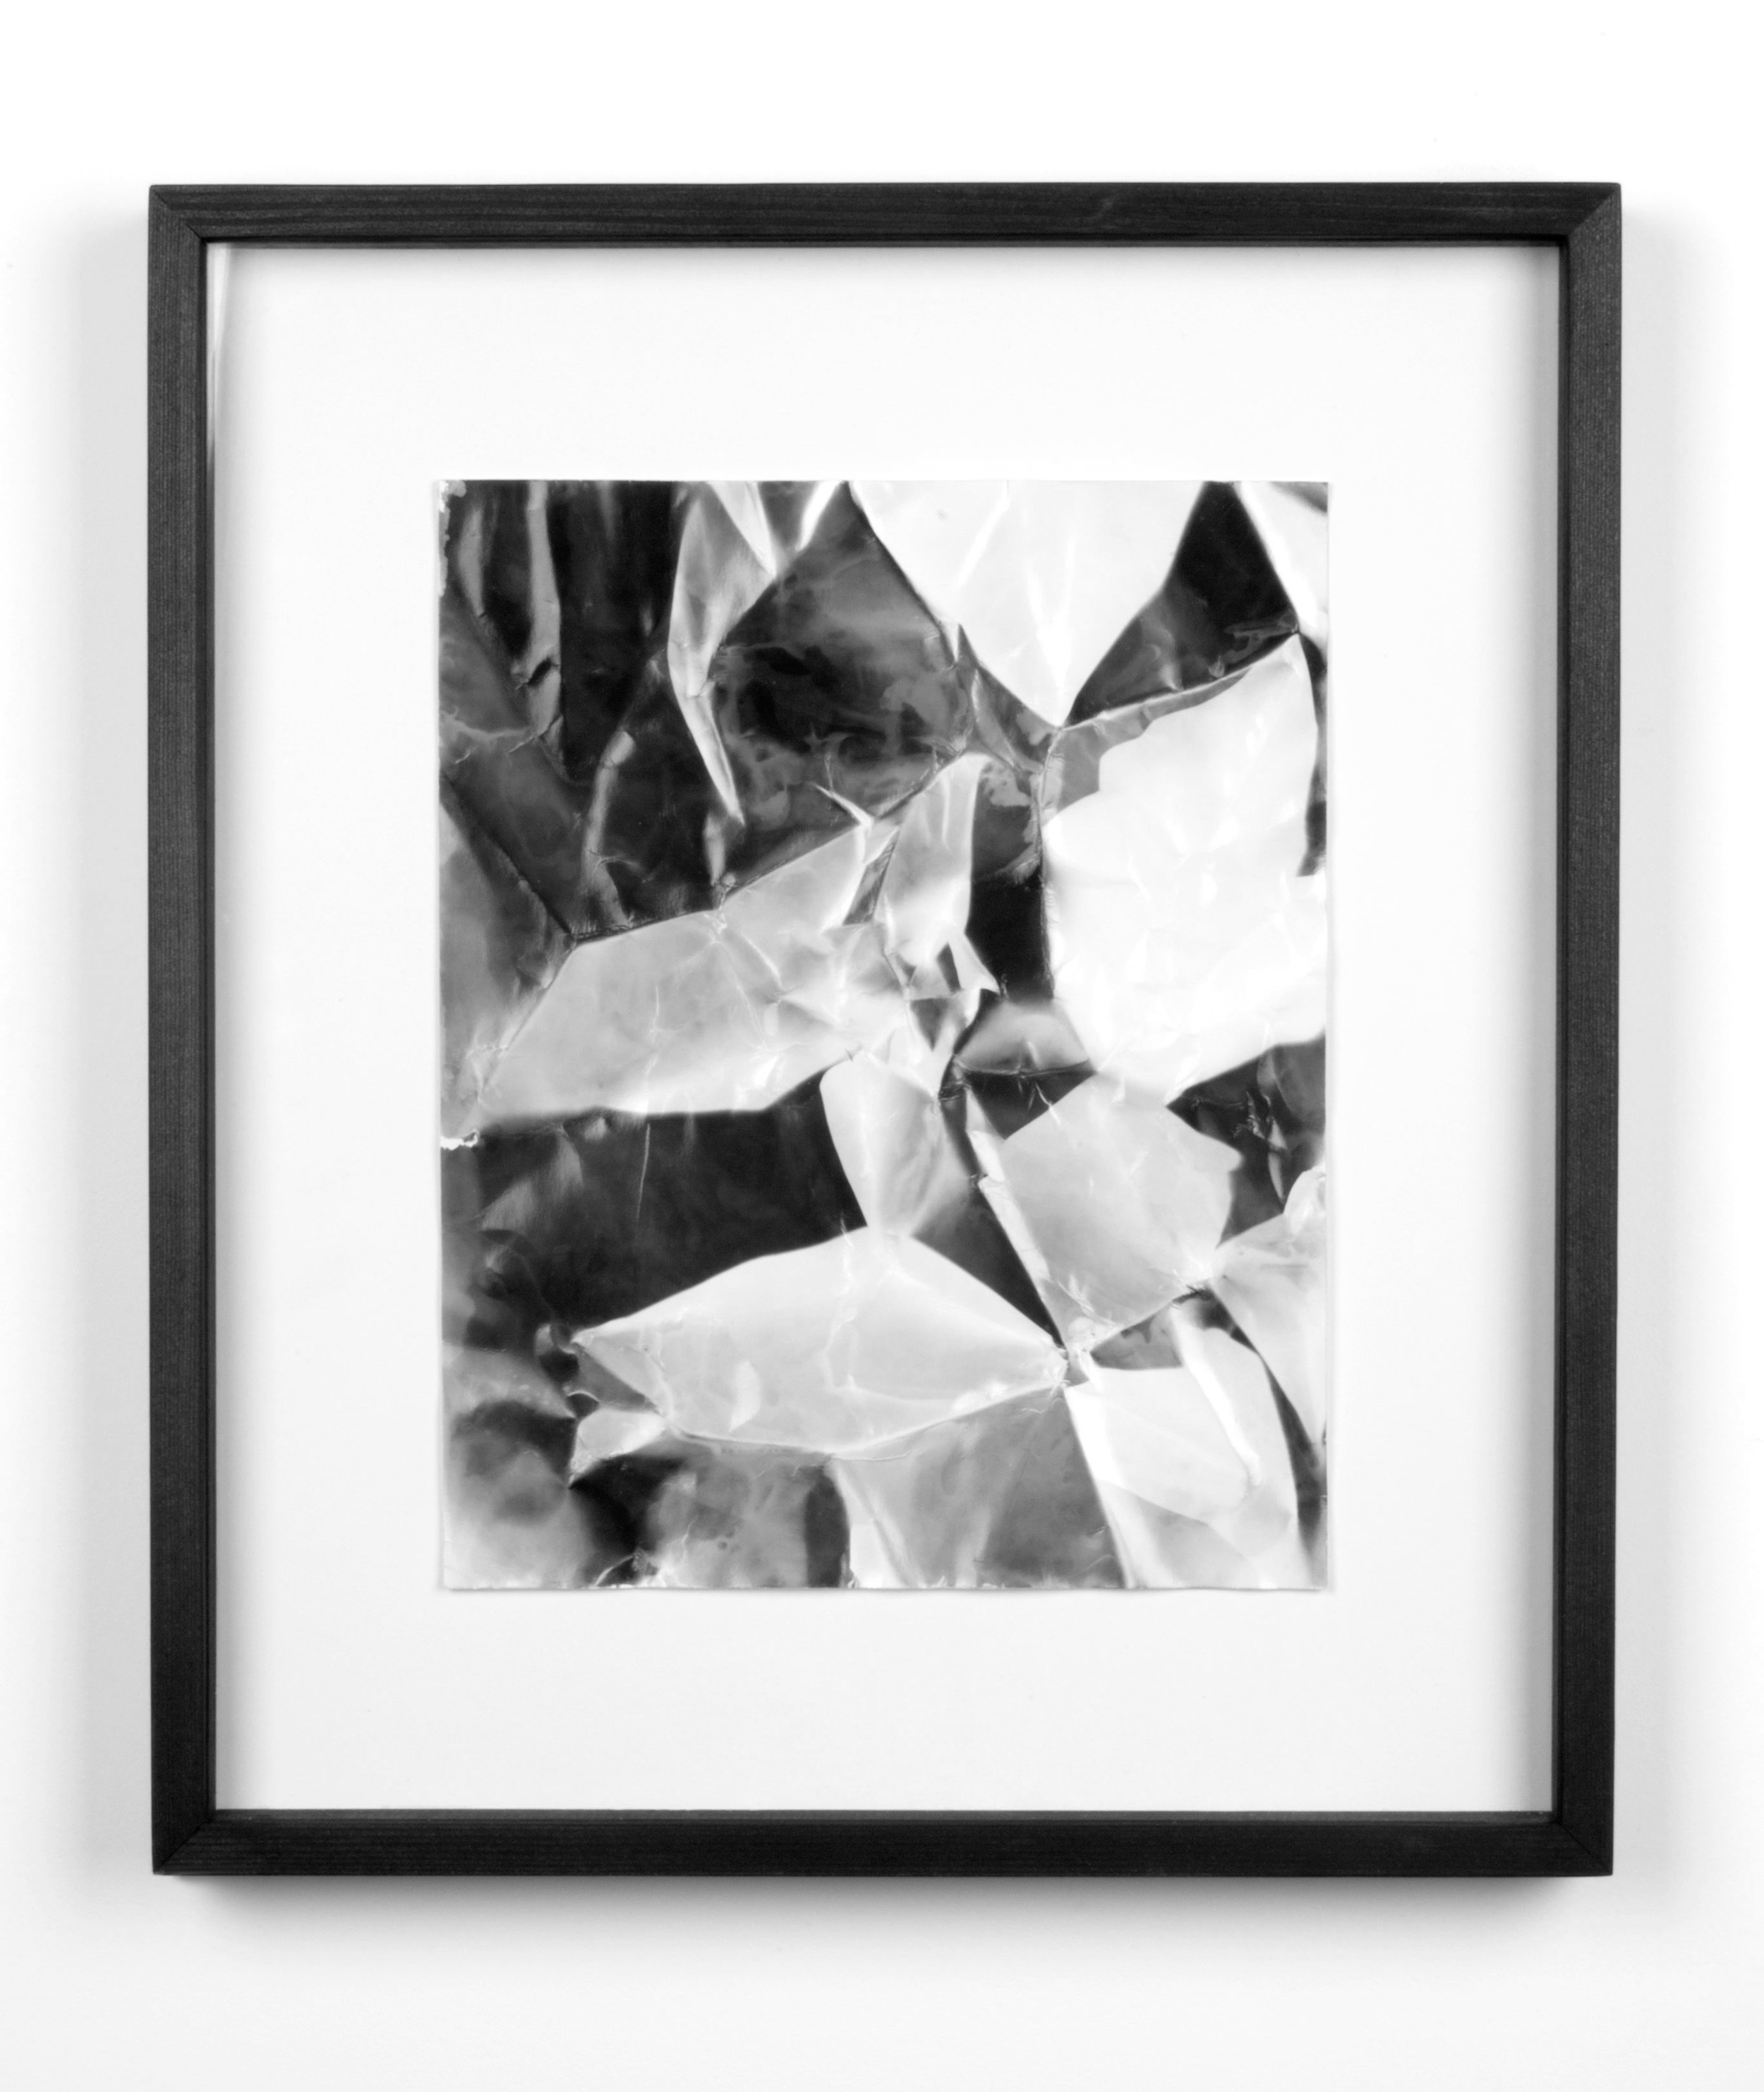 Picture Made by My Hand with the Assistance of Light   2011  Black and white fiber based photographic paper  14 7/8 x 12 7/8 inches   Pictures Made by My Hand with the Assistance of Light, 2005–2014    A Diagram of Forces, 2011